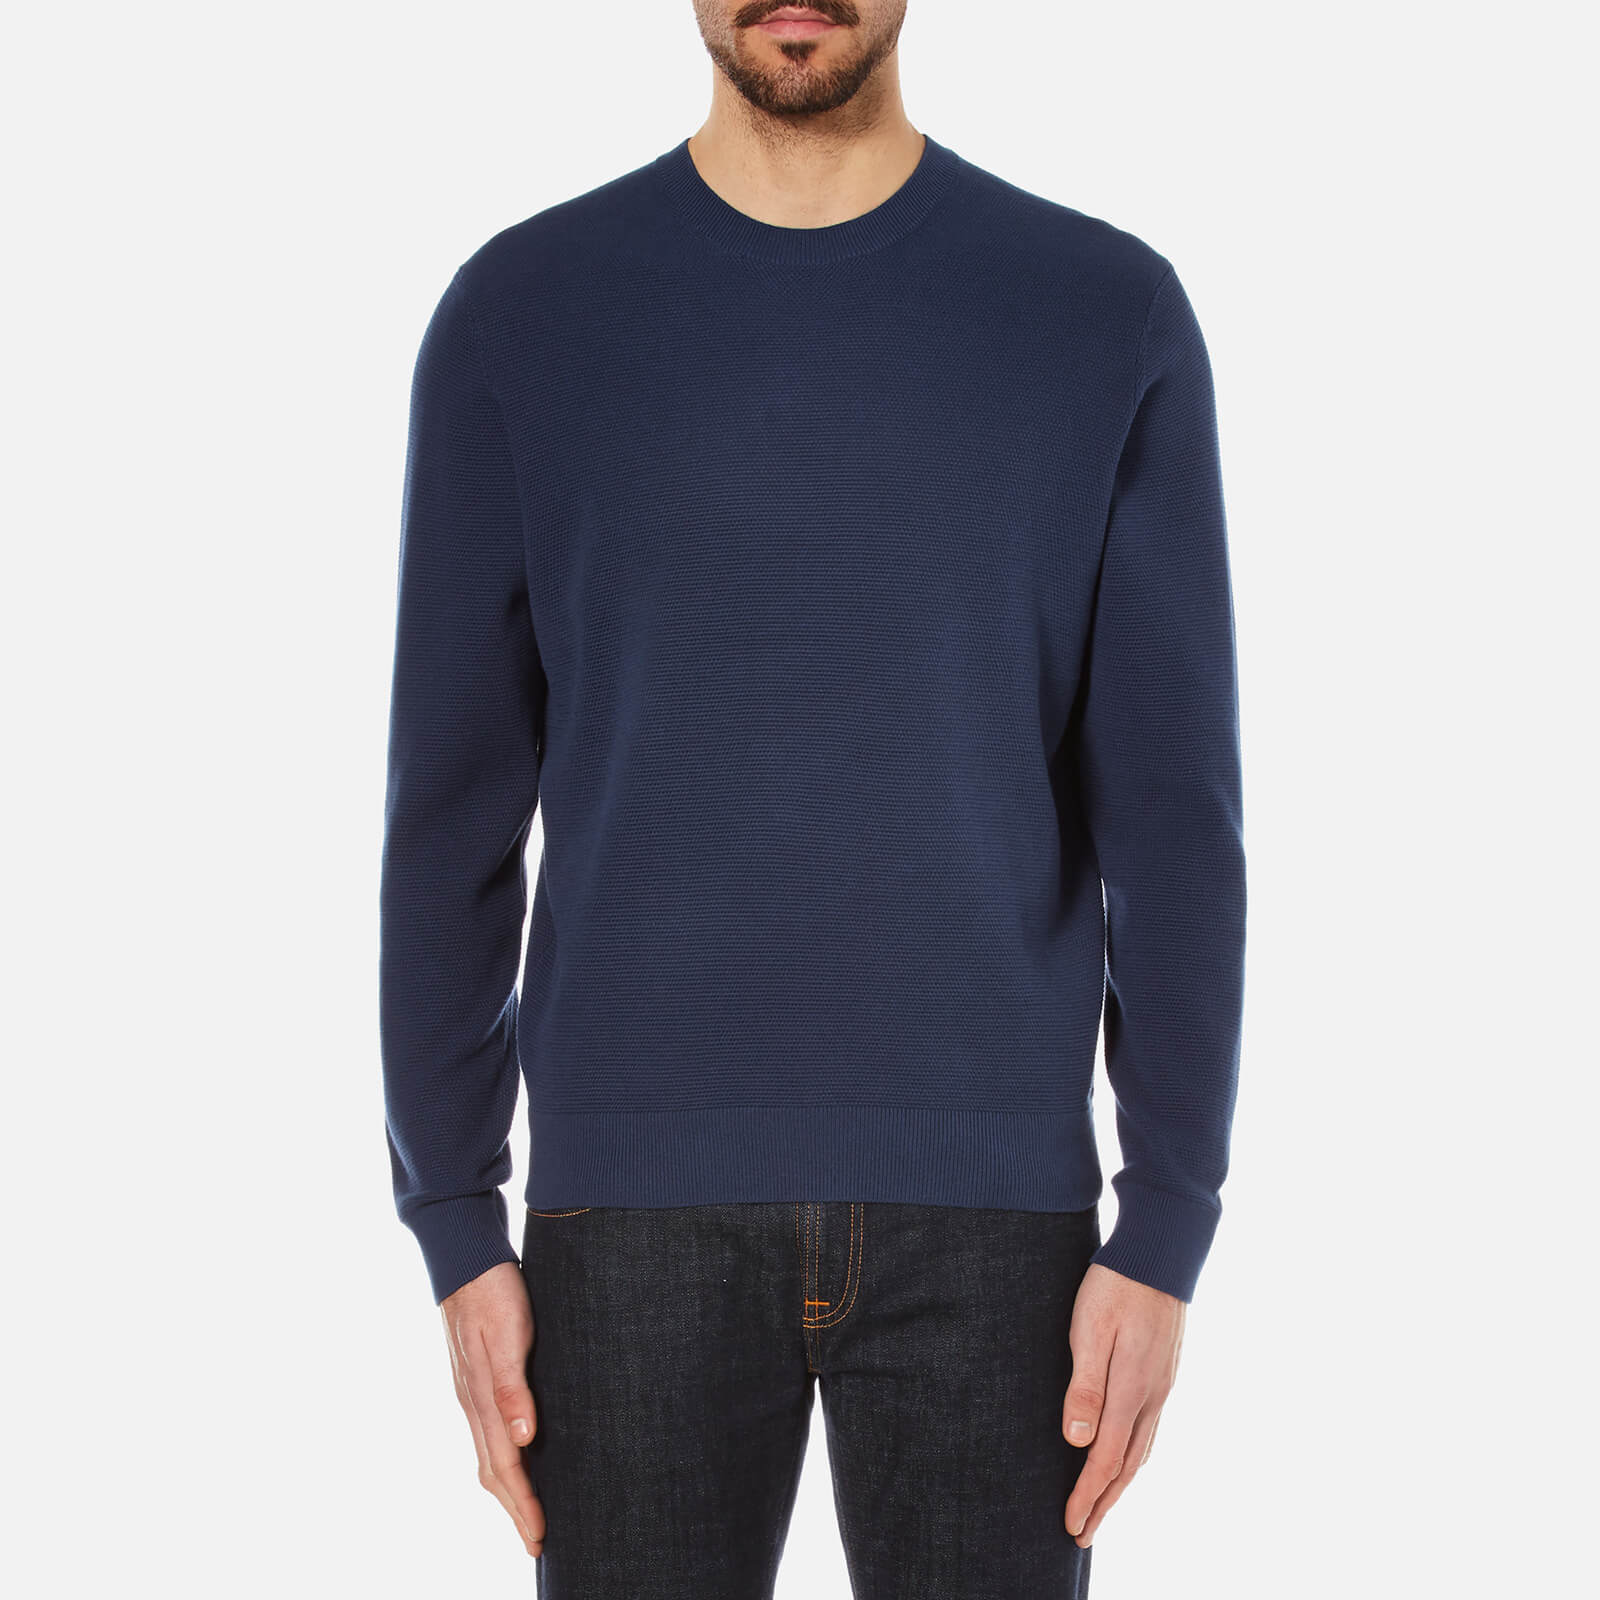 140ba59c919 PS by Paul Smith Men s Crew Neck Knitted Jumper - Indigo - Free UK Delivery  over £50